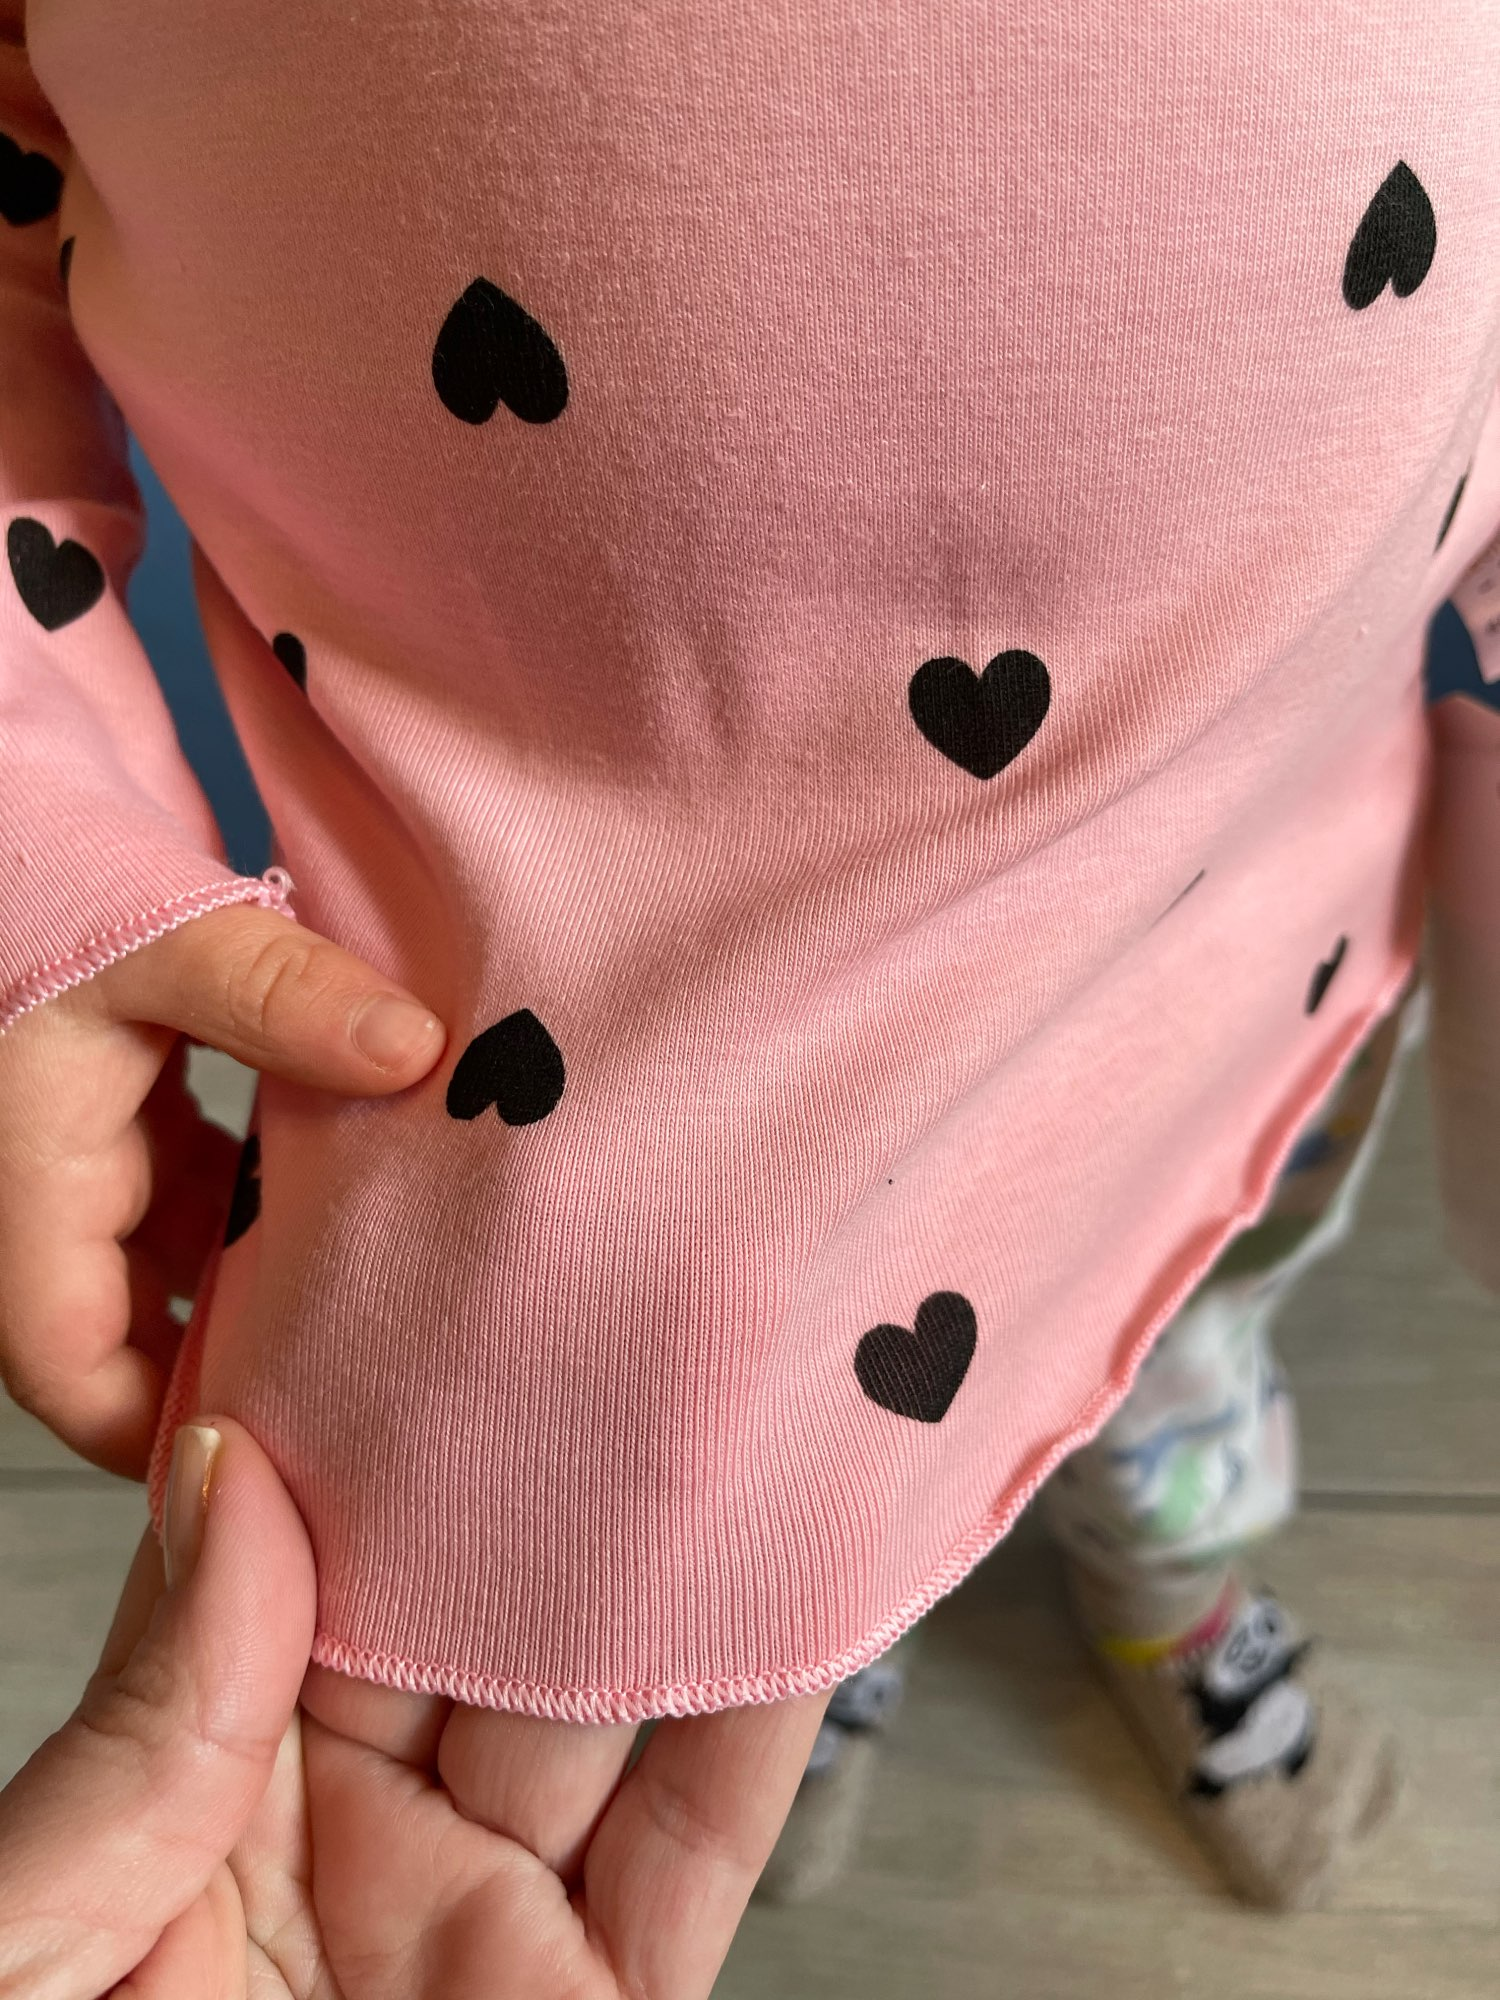 LILIGIRL 100% Cotton Girls T-Shirt Long-sleeve Baby Kids Turtleneck Bottoming Shirt for Children Clothes New Spring Girl Tops photo review